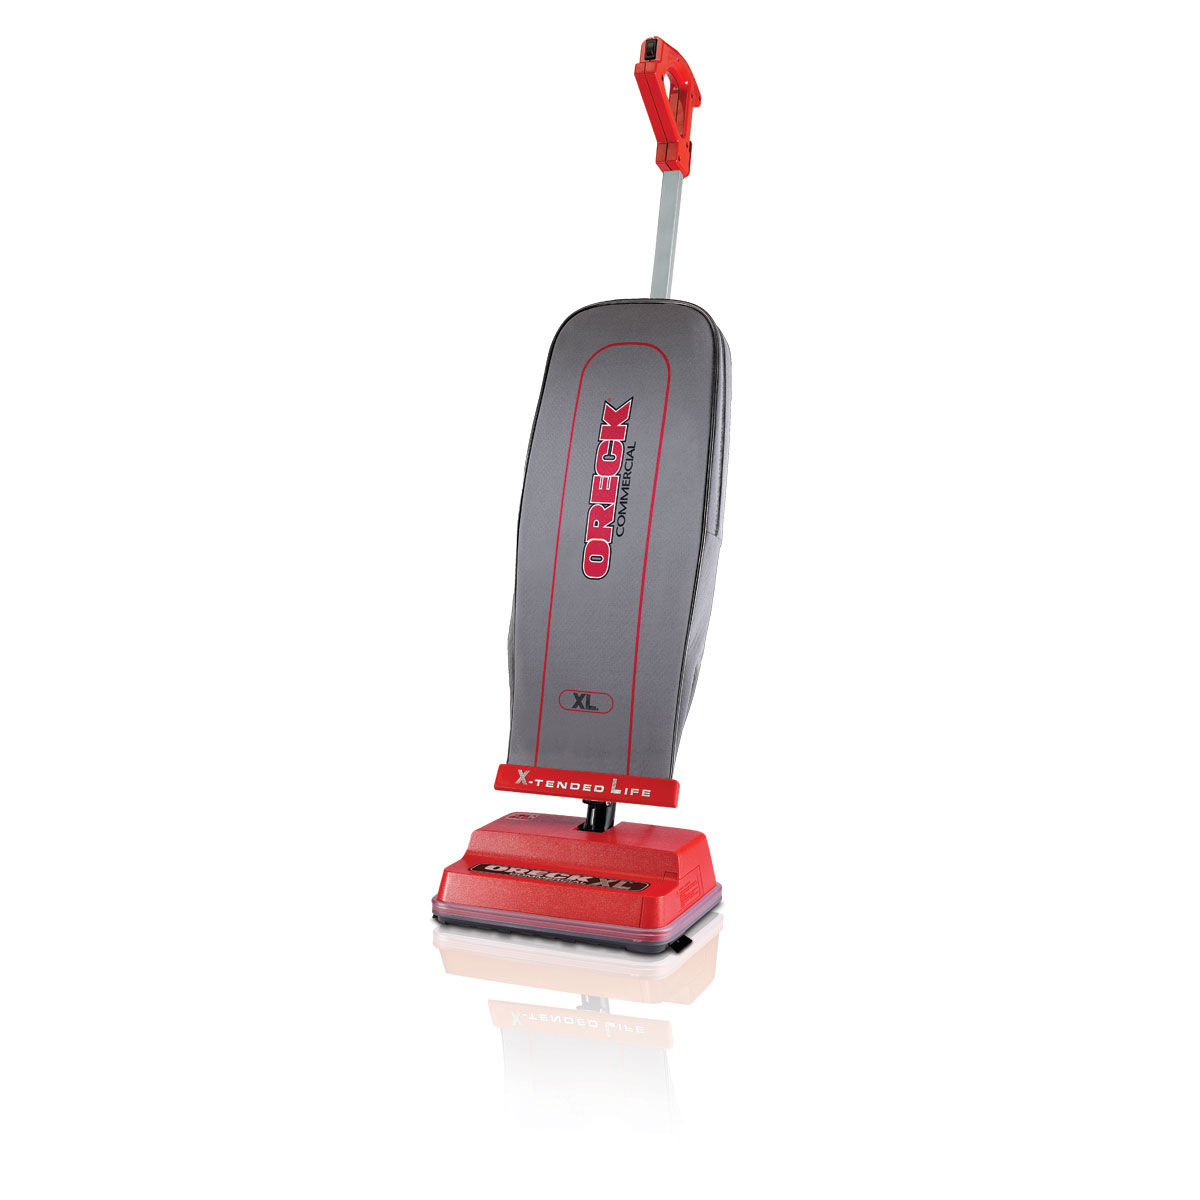 Oreck® U2000RB-1 Commercial Vacuum from a distance